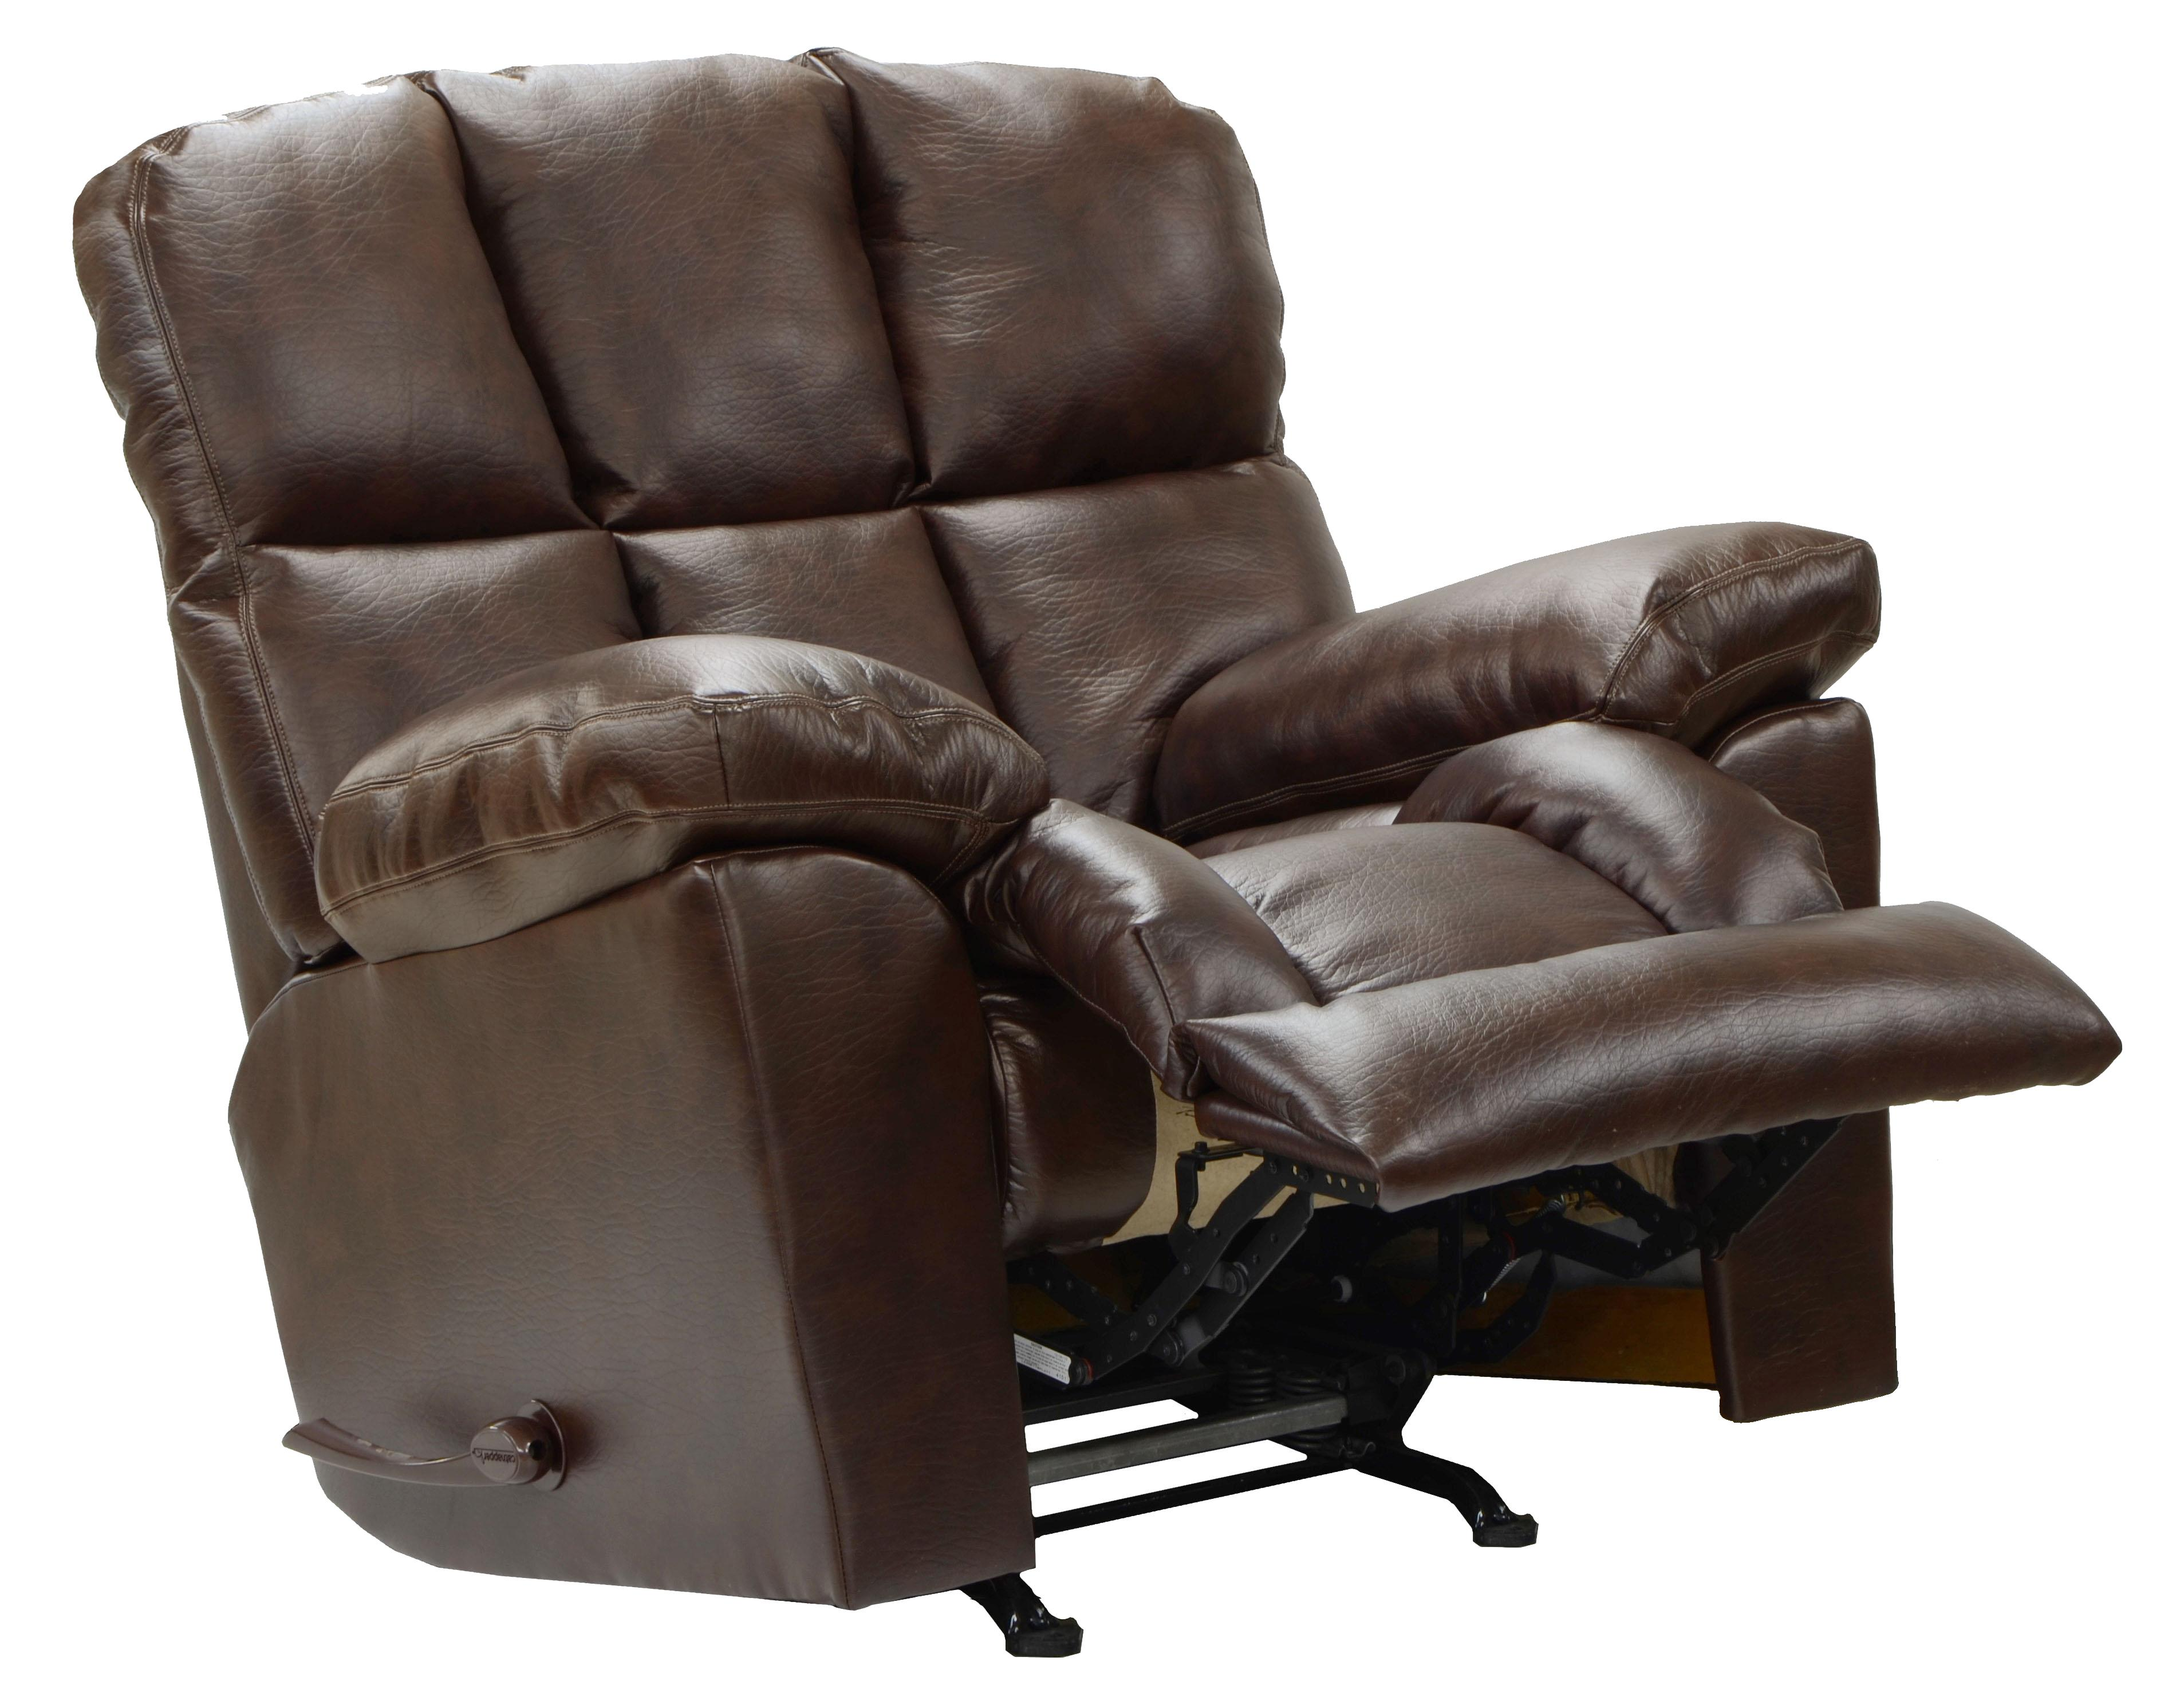 Catnapper Motion Chairs and Recliners Griffey Power Lay Flat Recliner - Item Number: 64549-7 1215-19 3015-09